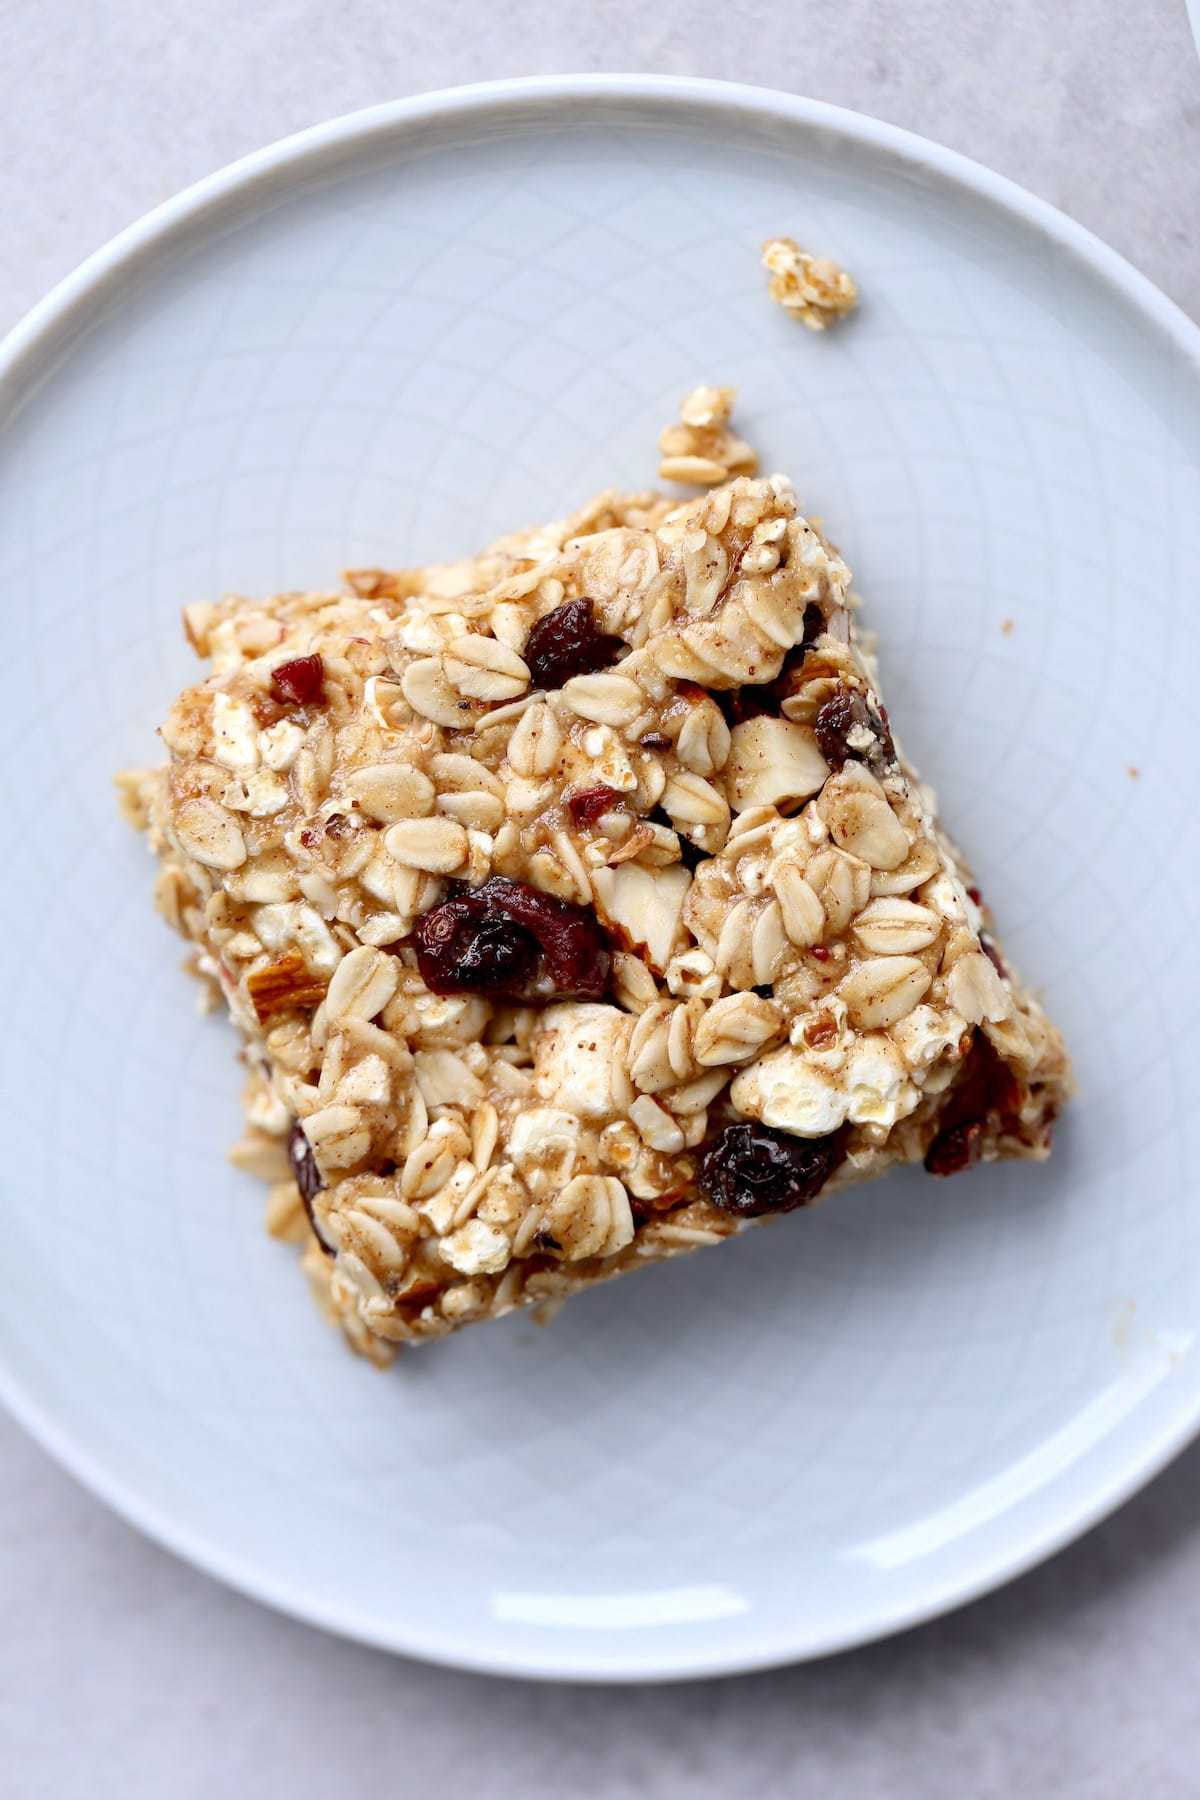 A chewy, craisin studded popcorn granola bar on a plate